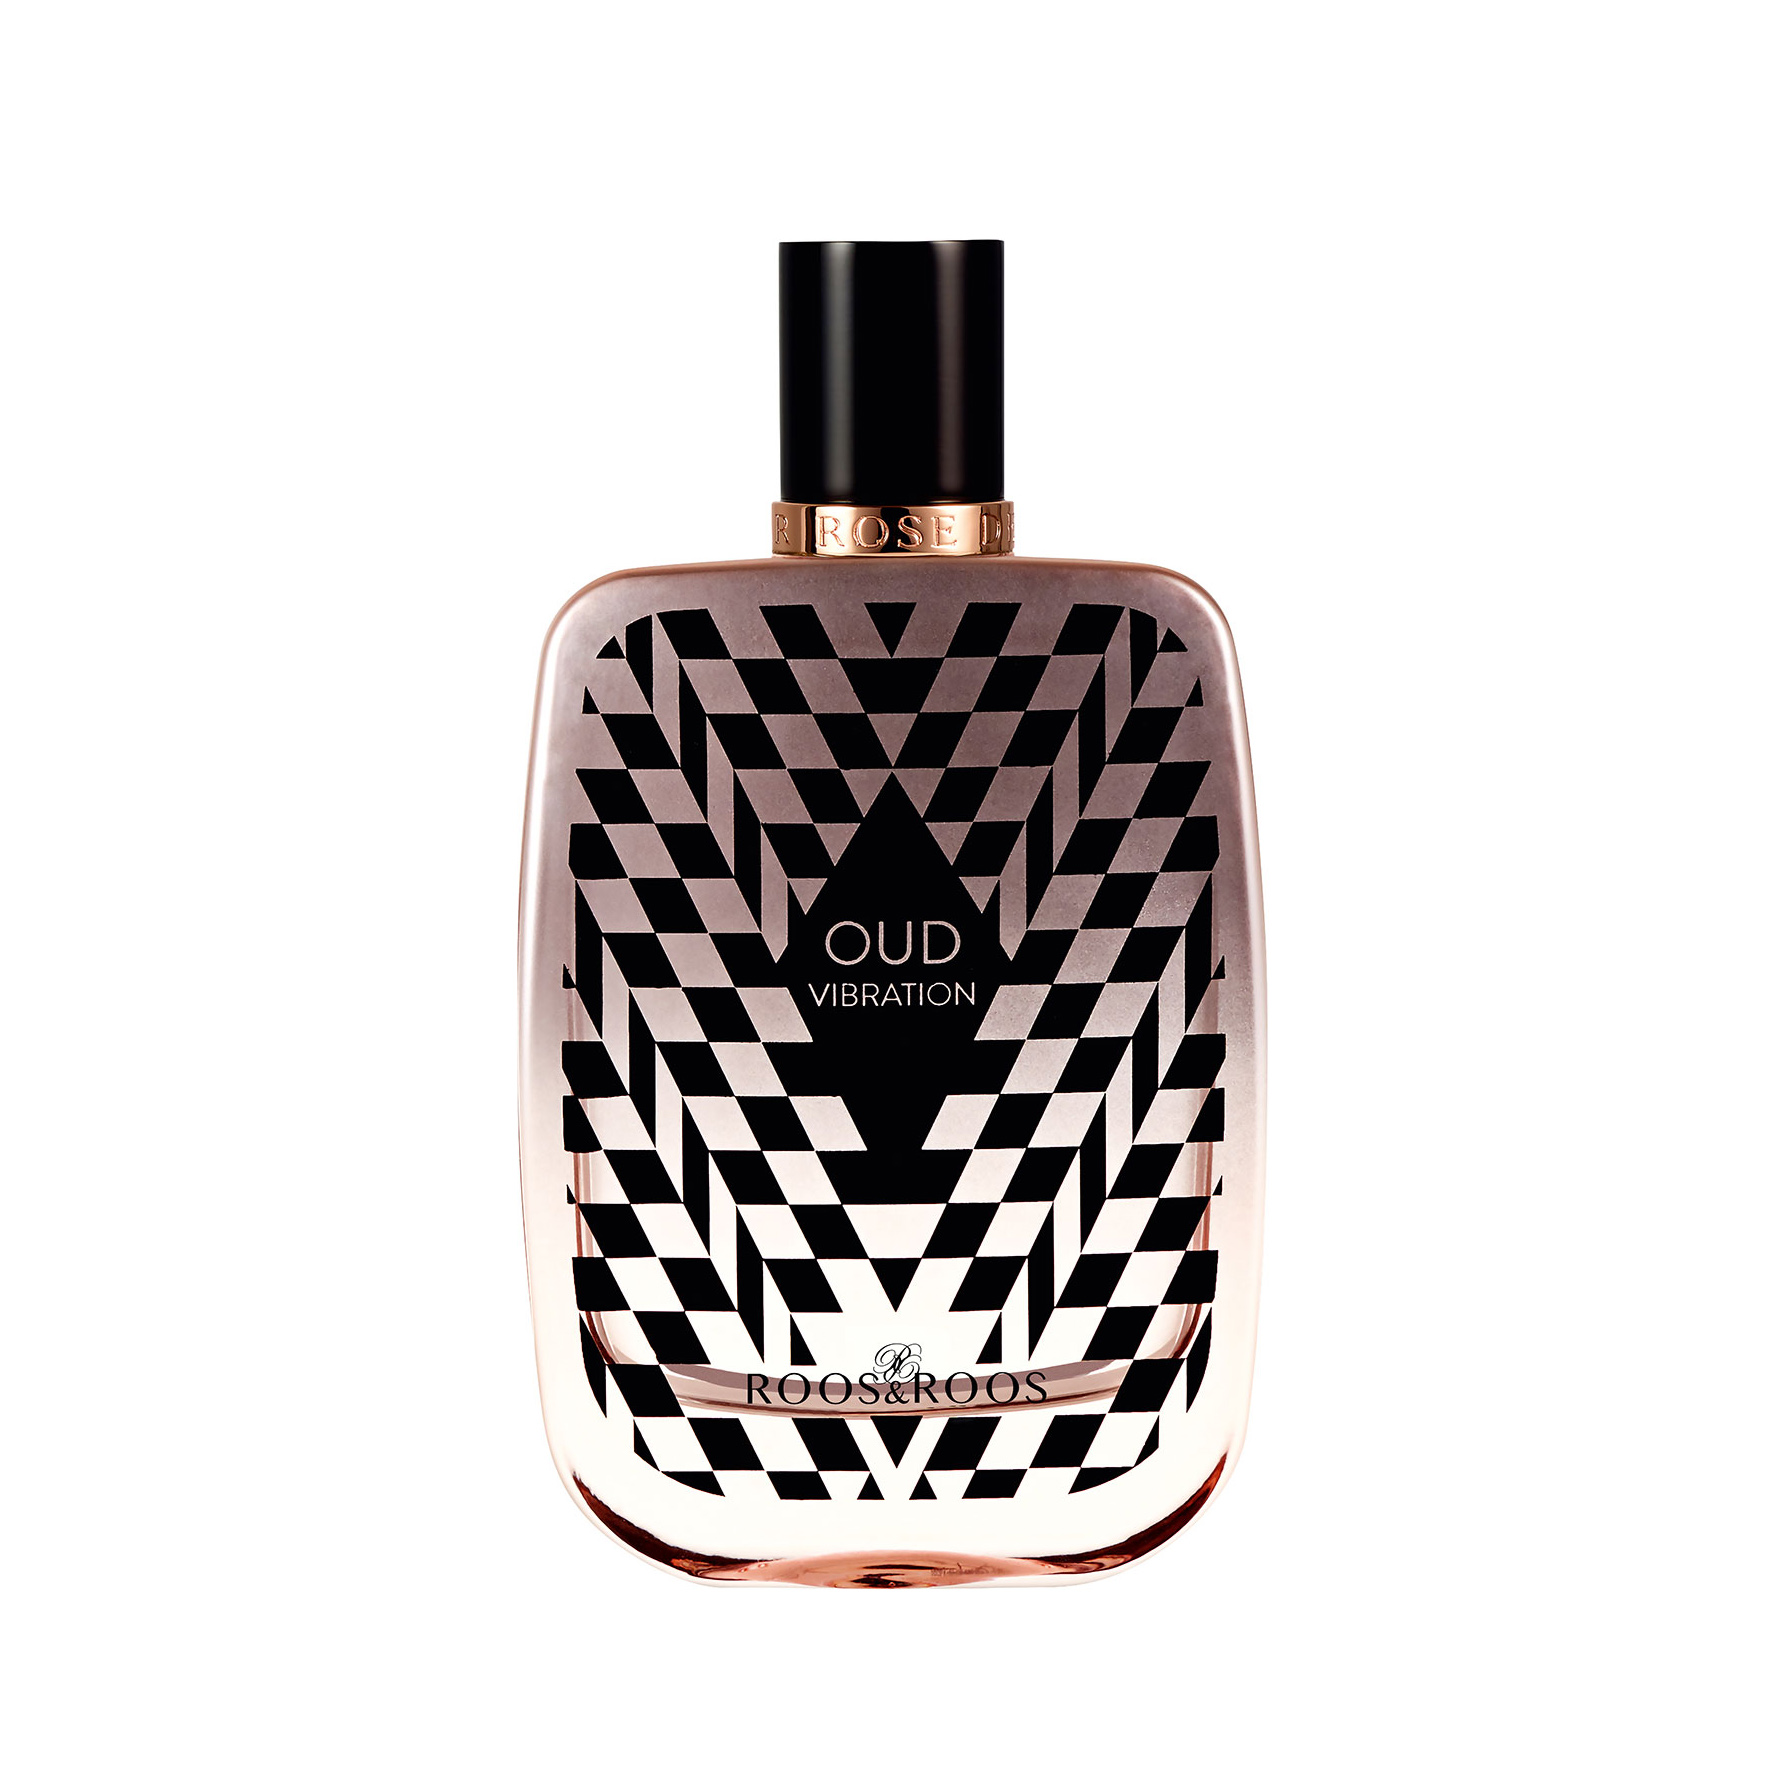 holiday gift guide fragrance- RoosRoos - Be instantly transported to a Middle Eastern bazaar with this cardamom- and clove-infused scent that is a spice market IRL. $260 for 3.4 oz, neimanmarcus.com